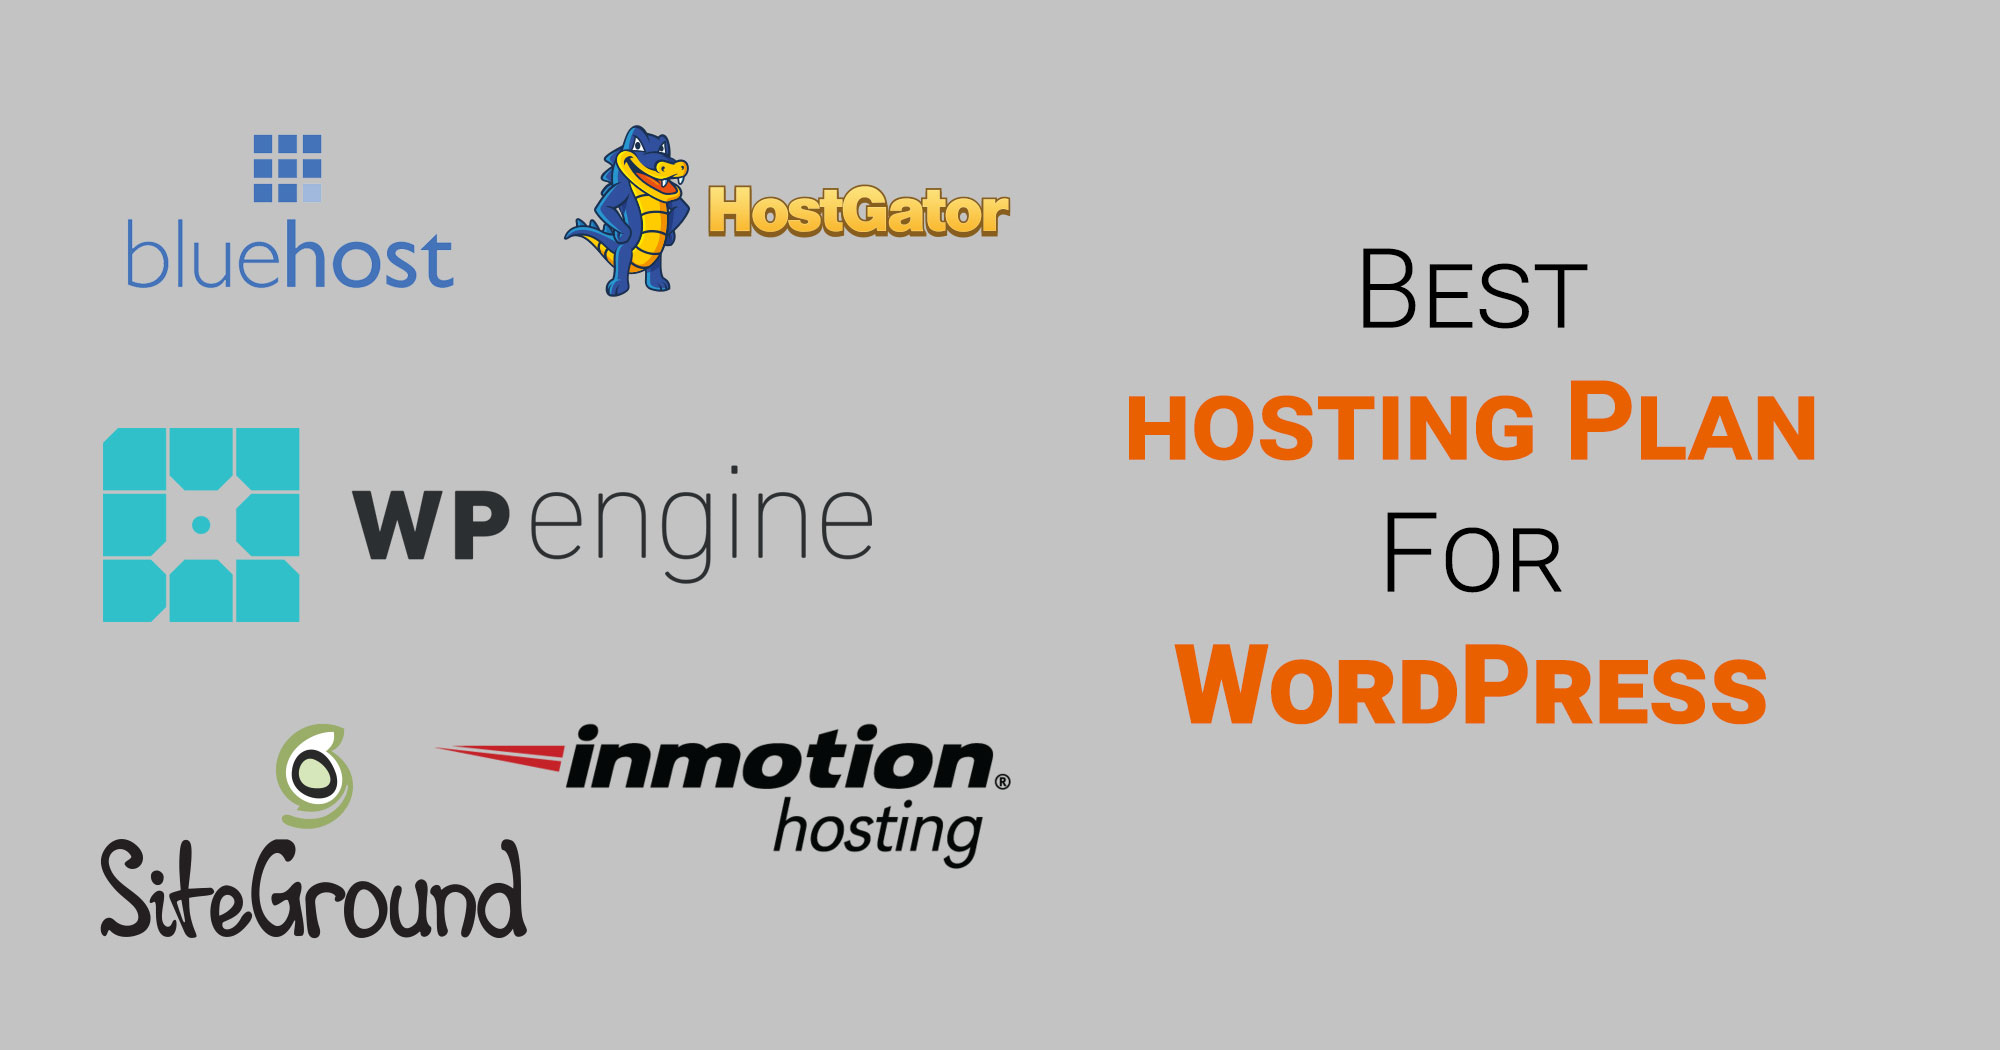 Best Hosting Plan For WordPress